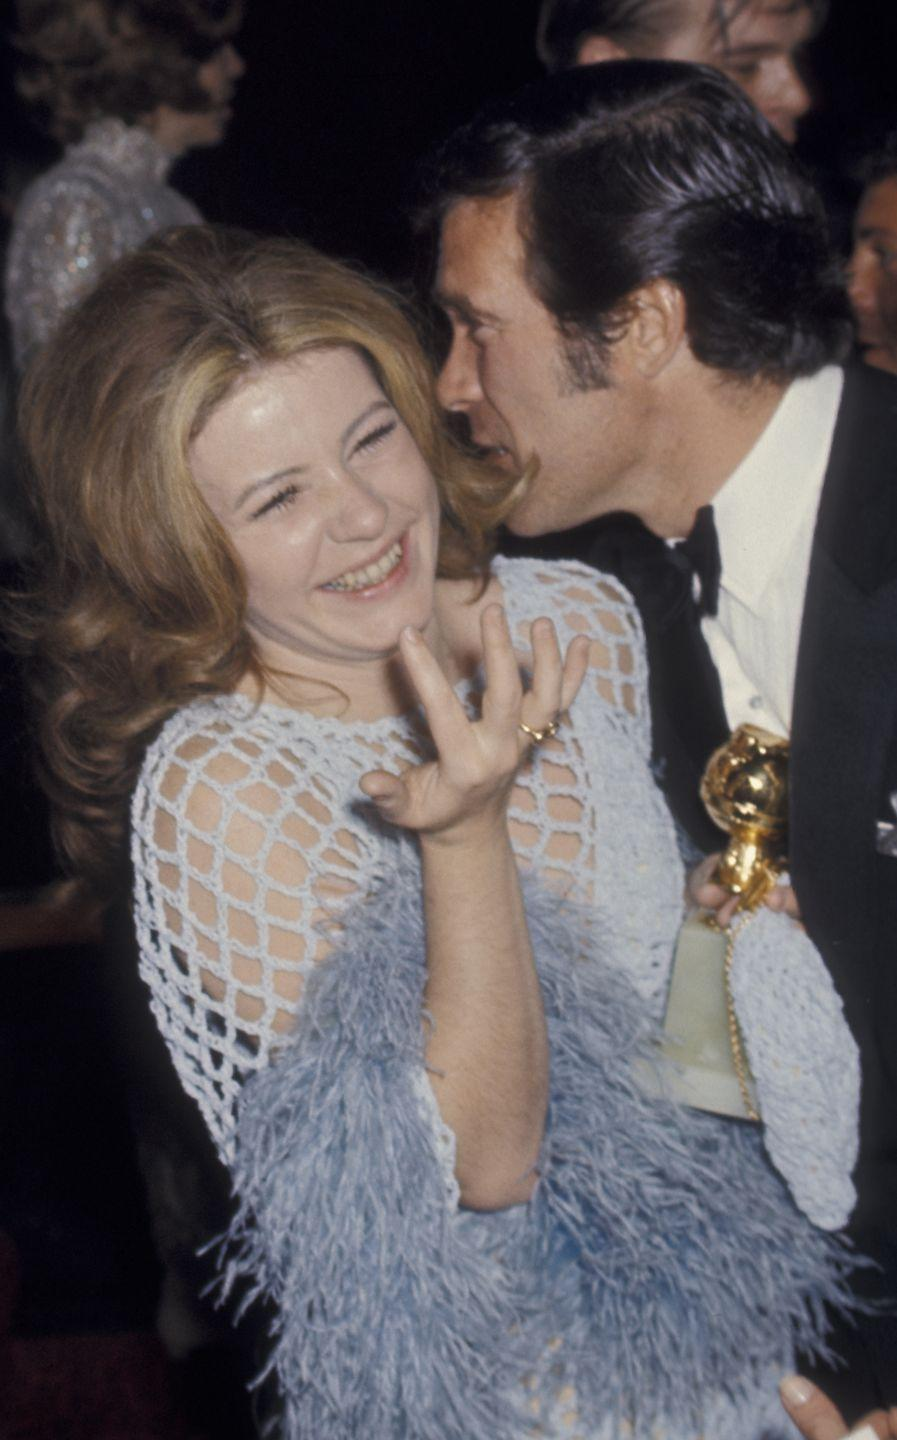 <p>Patty Duke ushered in the 1970s with a sheer netted dress and bold blue feather bell sleeves dress that was equal parts funky and fashionable. </p>